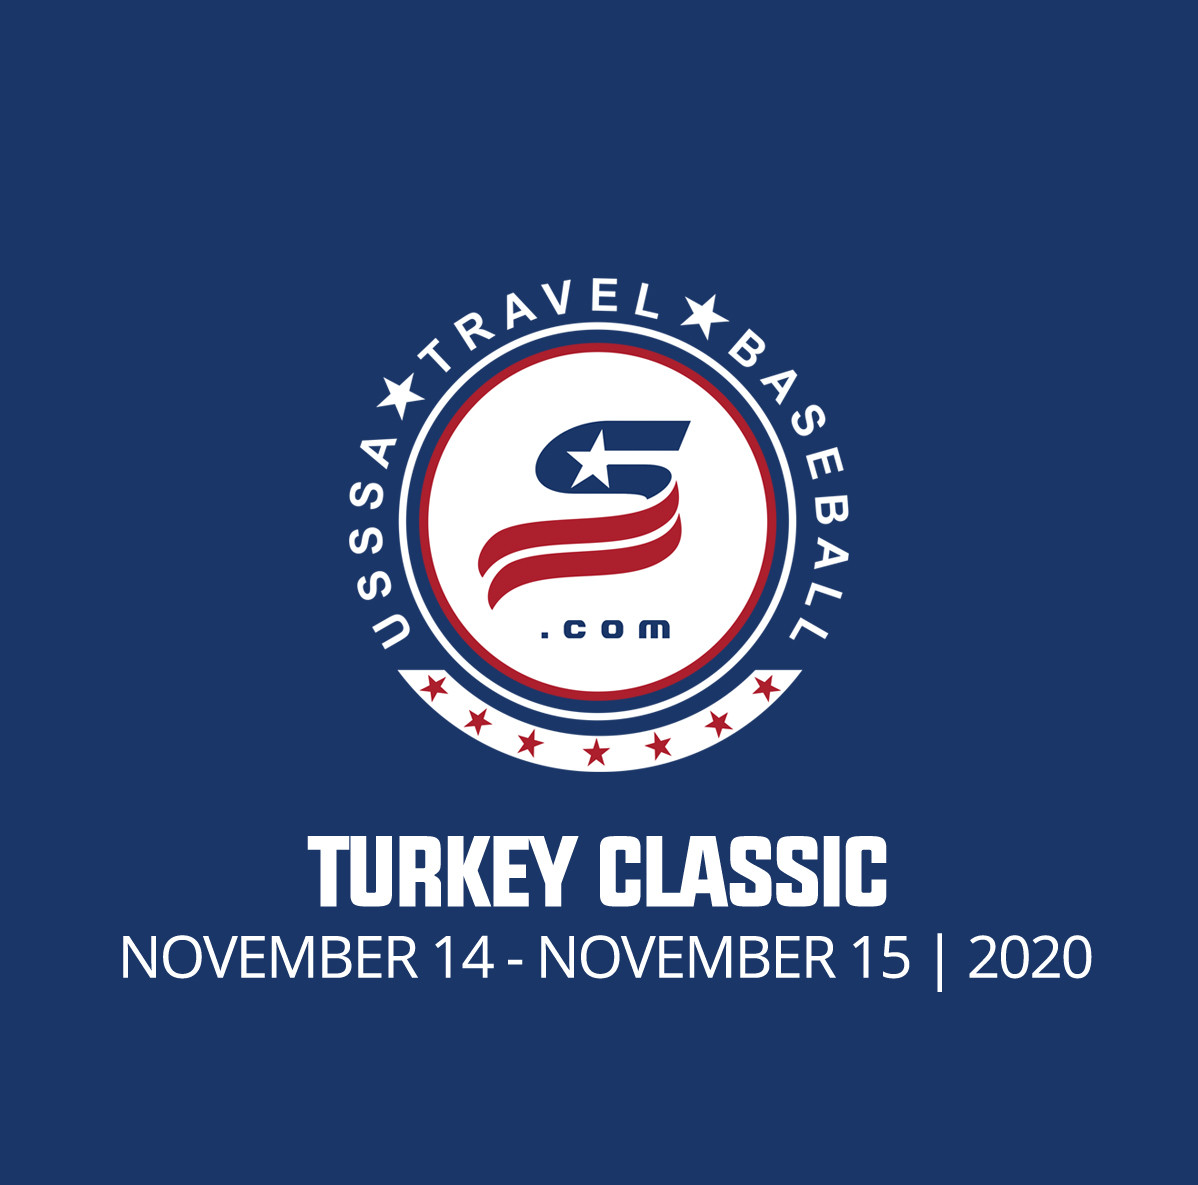 UPSTATE - TURKEY CLASSIC